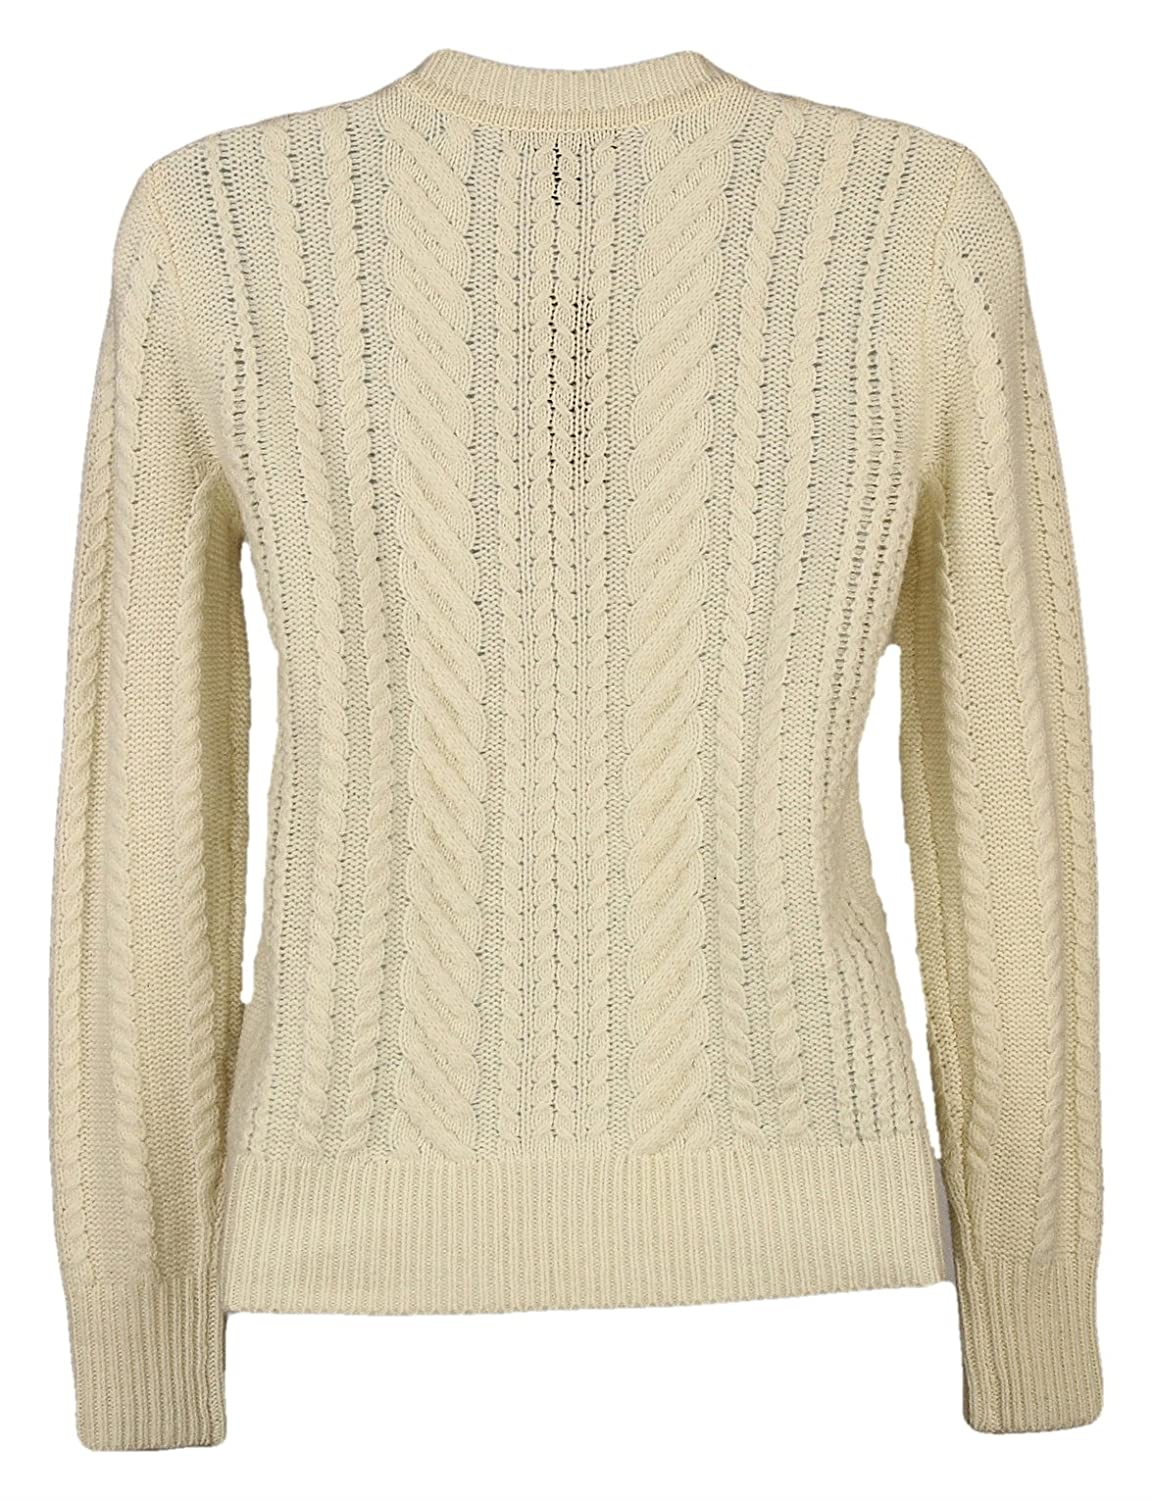 257509f4f4b J. Crew Perfect Cable Sweater Womens Cream Size XXS at Amazon Women s  Clothing store